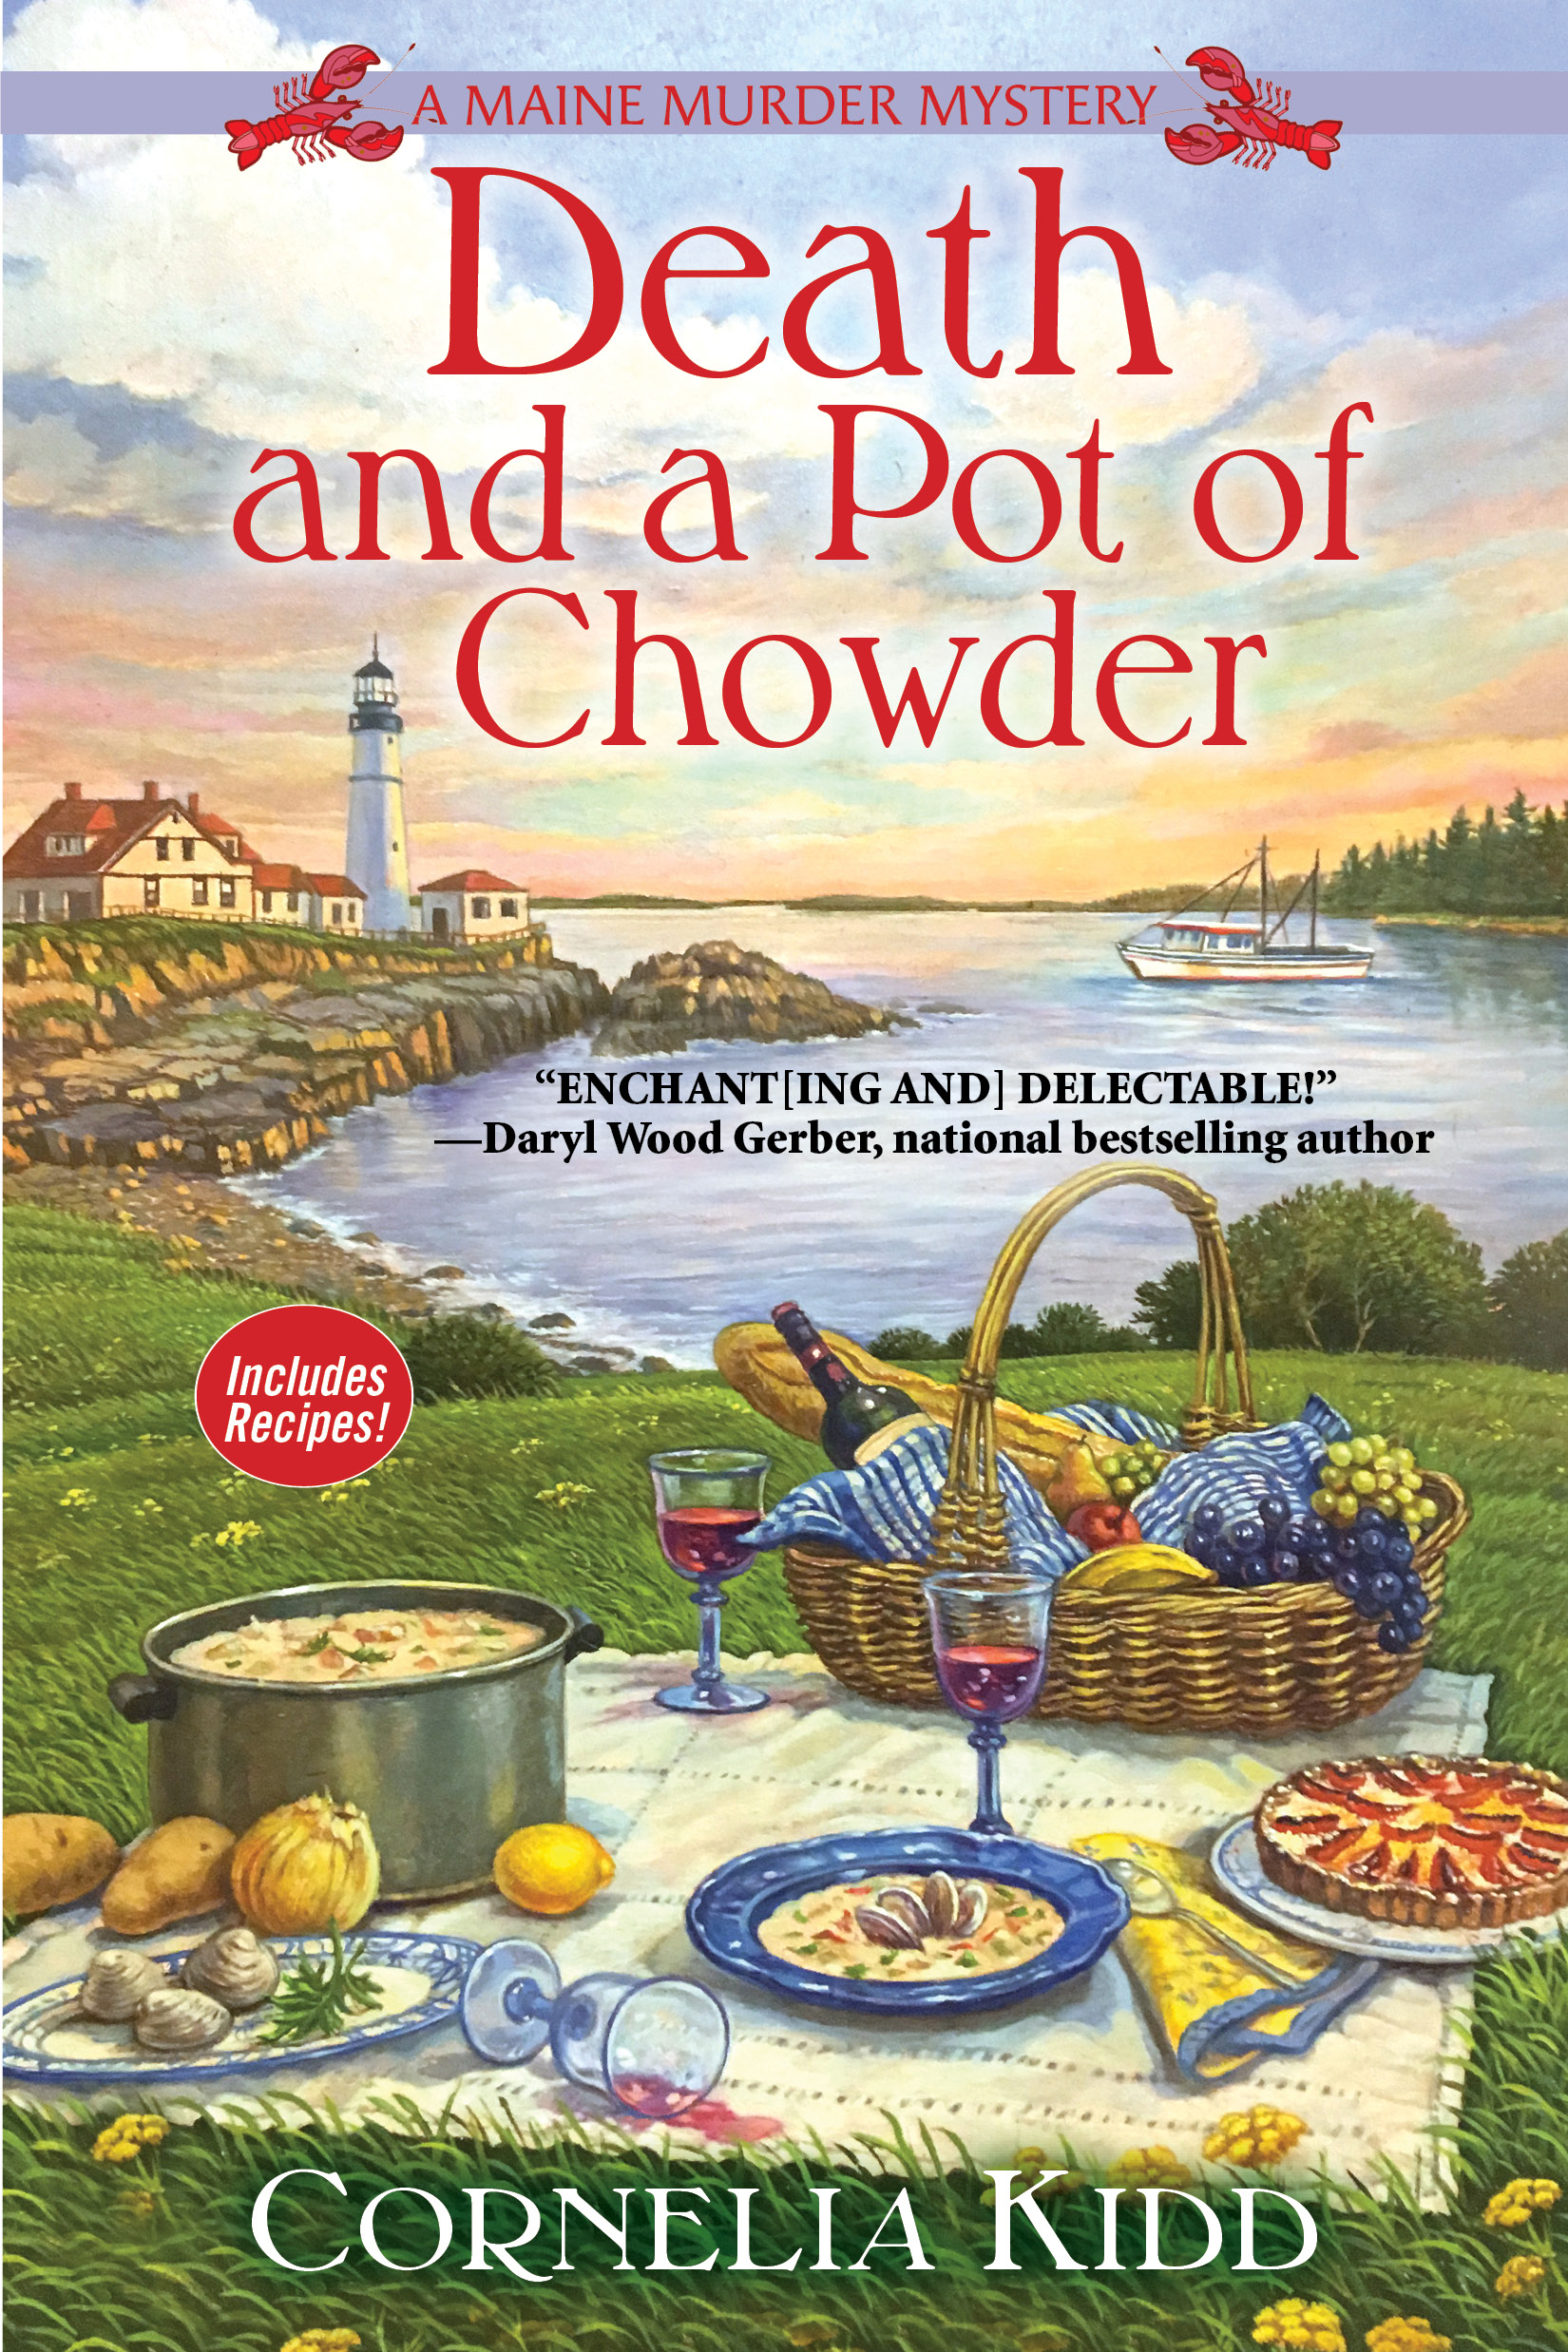 A Maine Murder Mystery: Death and a Pot of Chowder